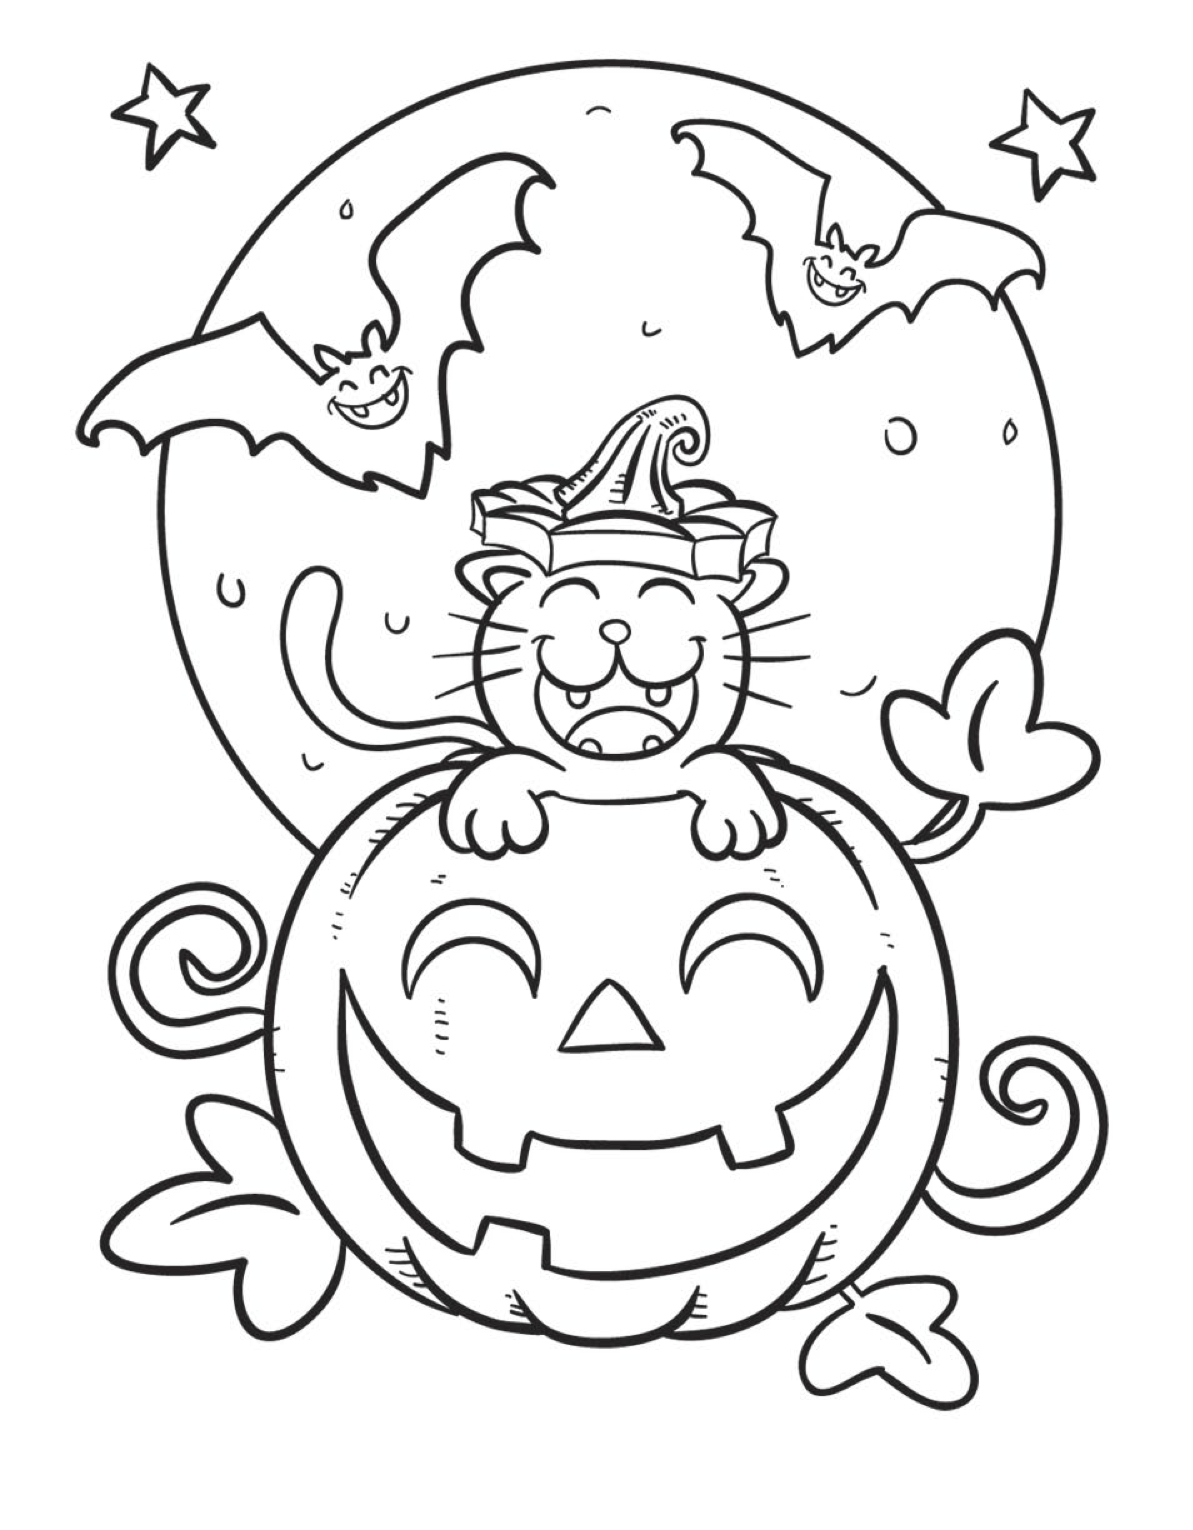 Cantinho do primeiro ciclo desenhos de halloween para pintar for Cute halloween coloring pages free